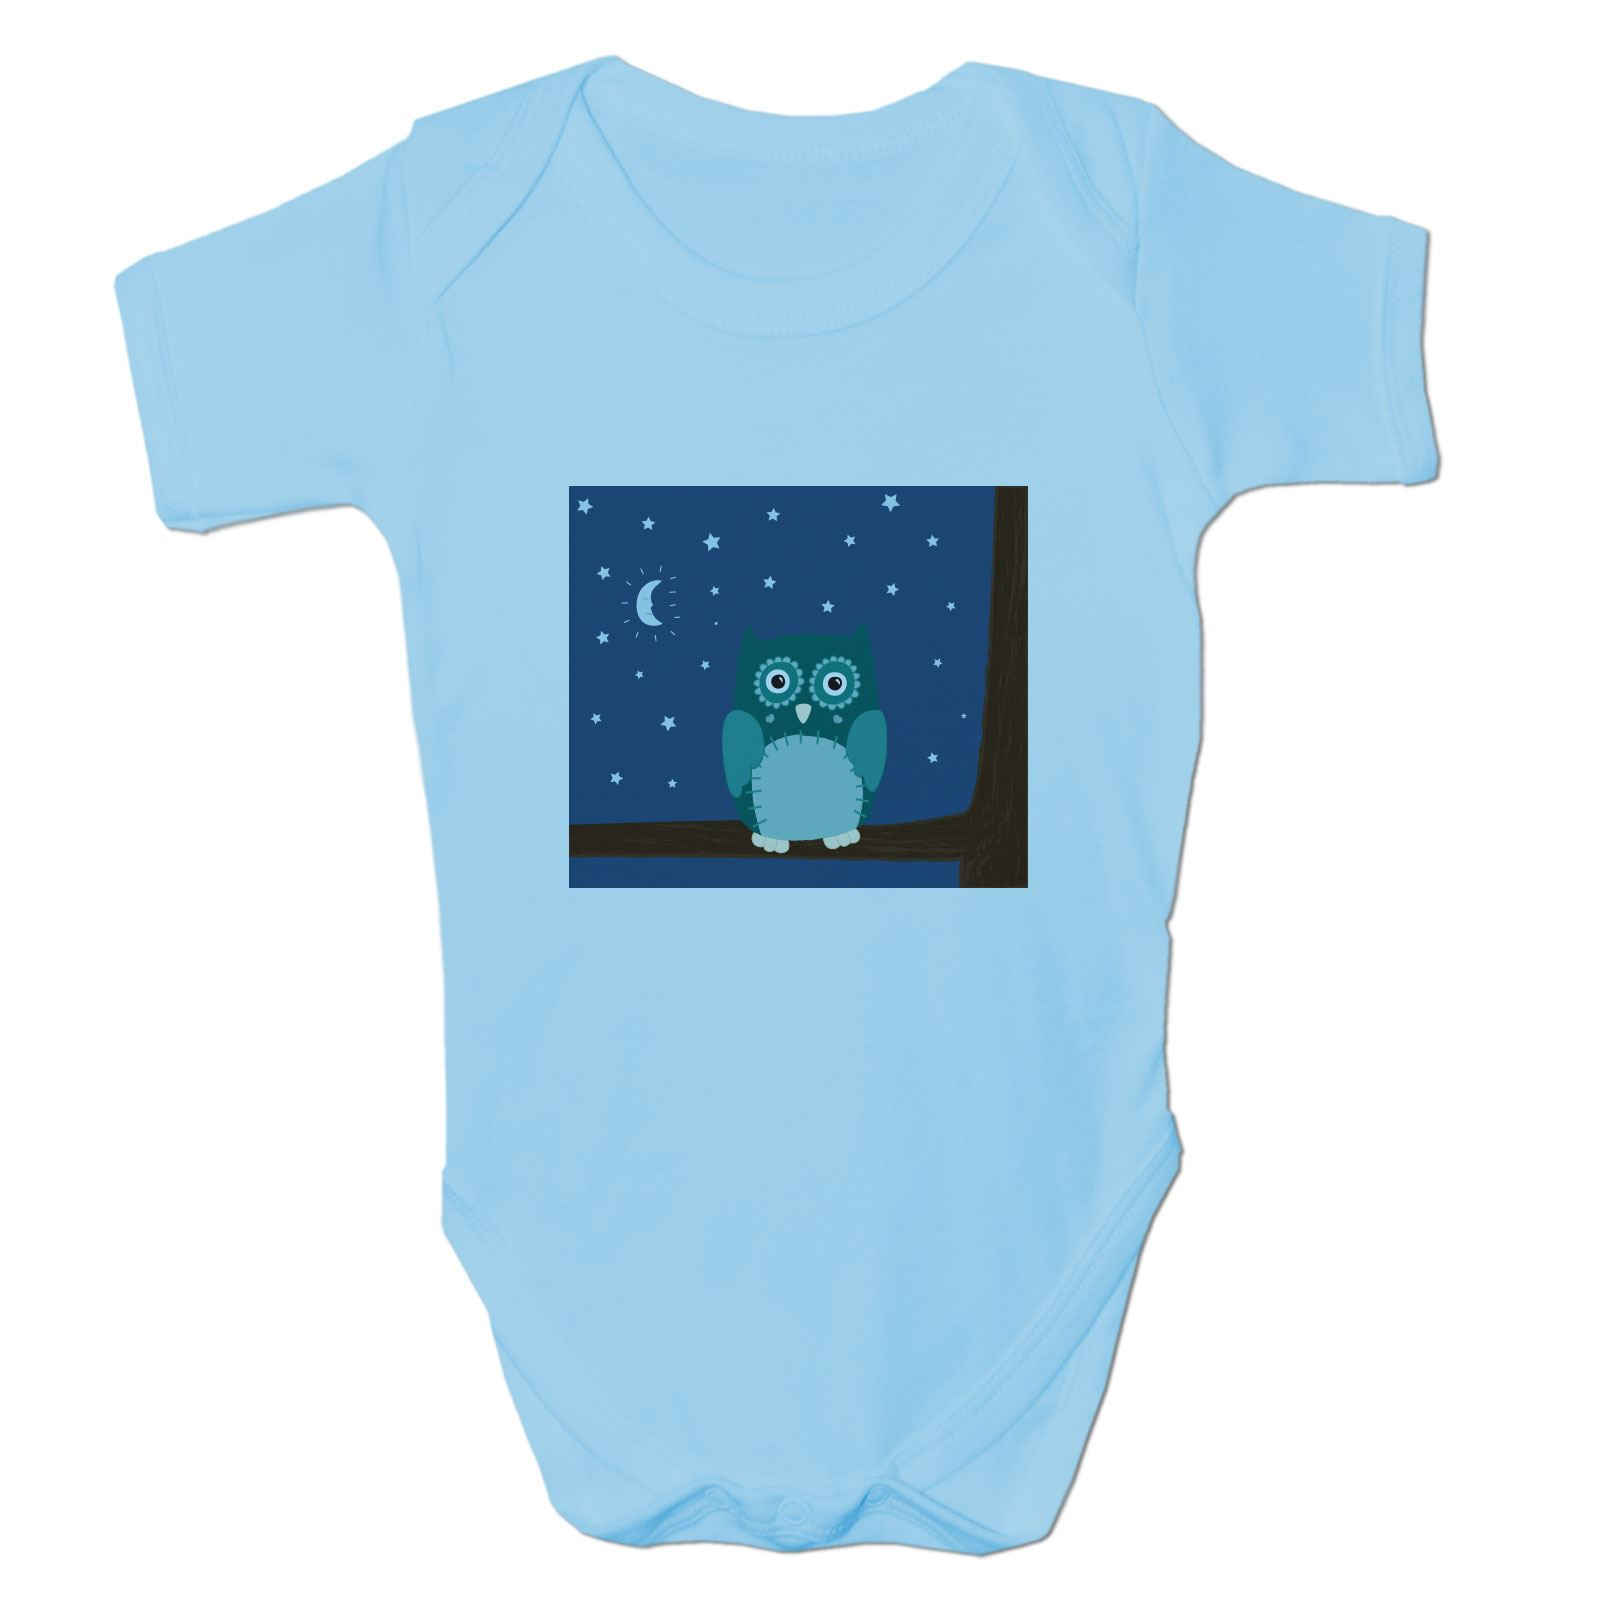 Baby Grow Clothes Novelty Gifts For Babies Boys Night Owl Ebay